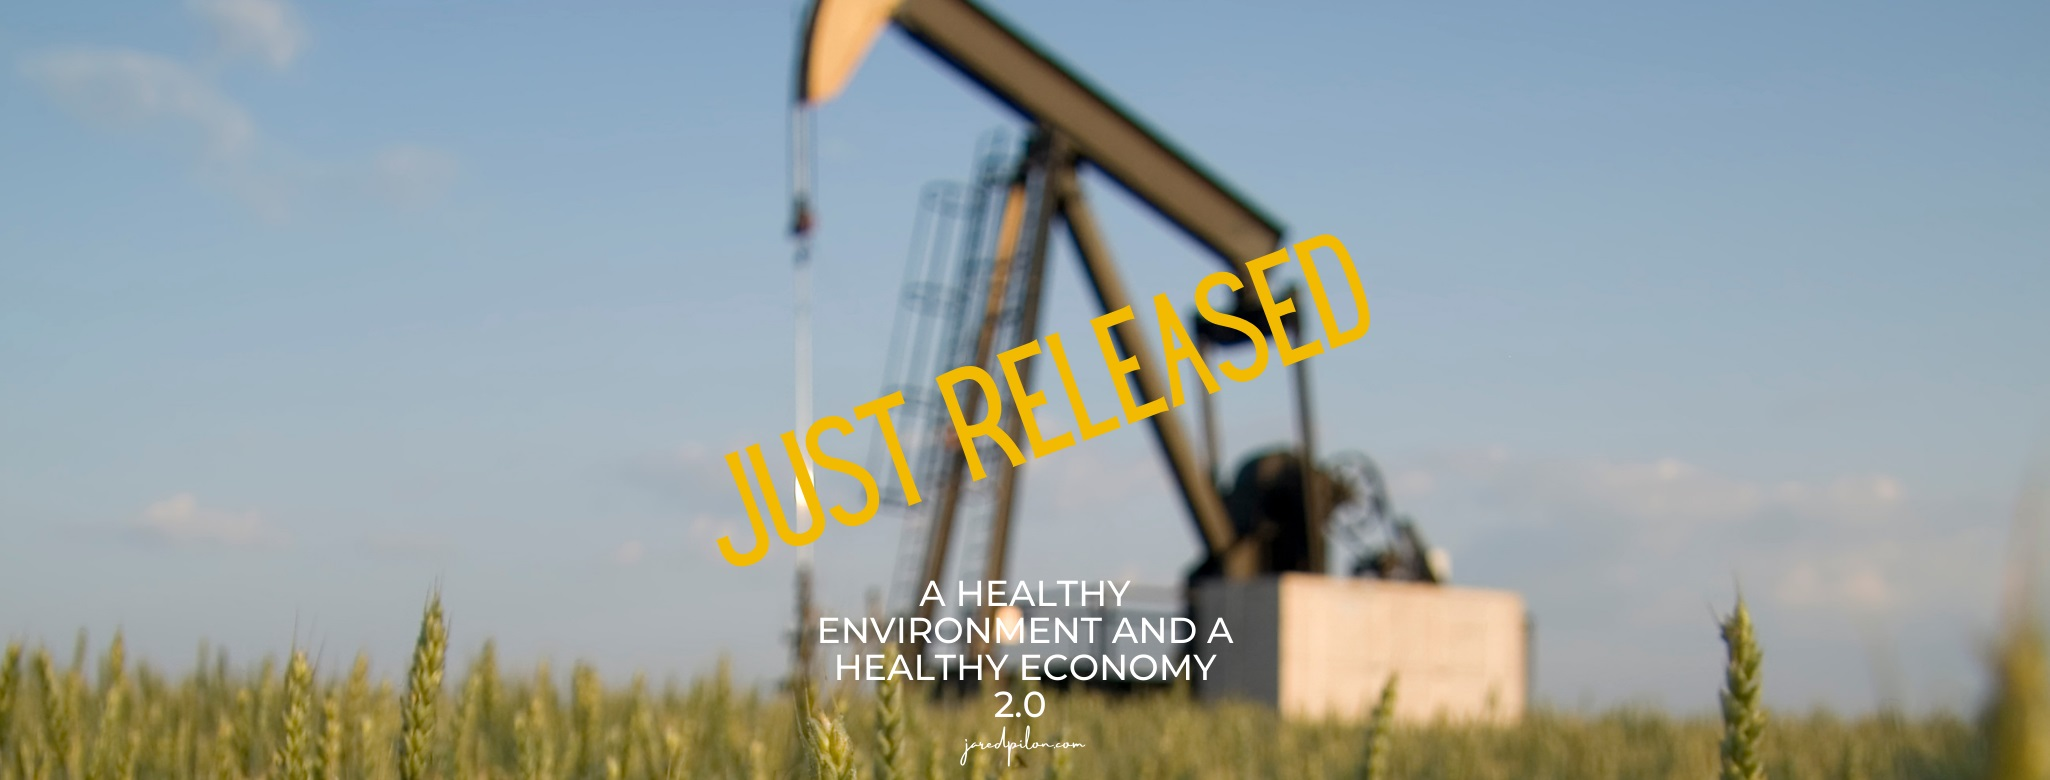 A Healthy Environment and a Healthy Economy 2.0